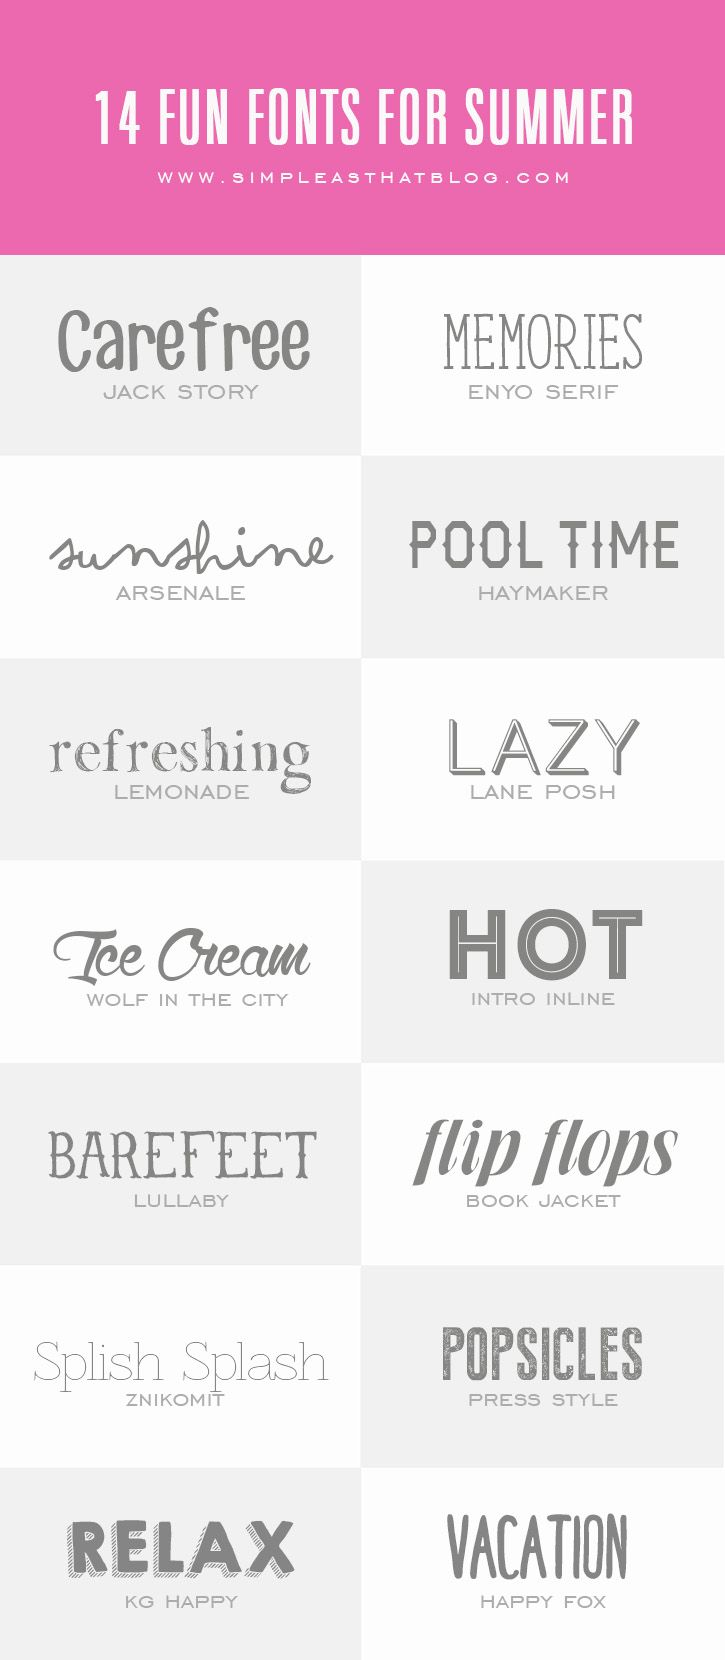 14 Fun Fonts for Summer - simple as that  ~~ {14 Free fonts w/ links}